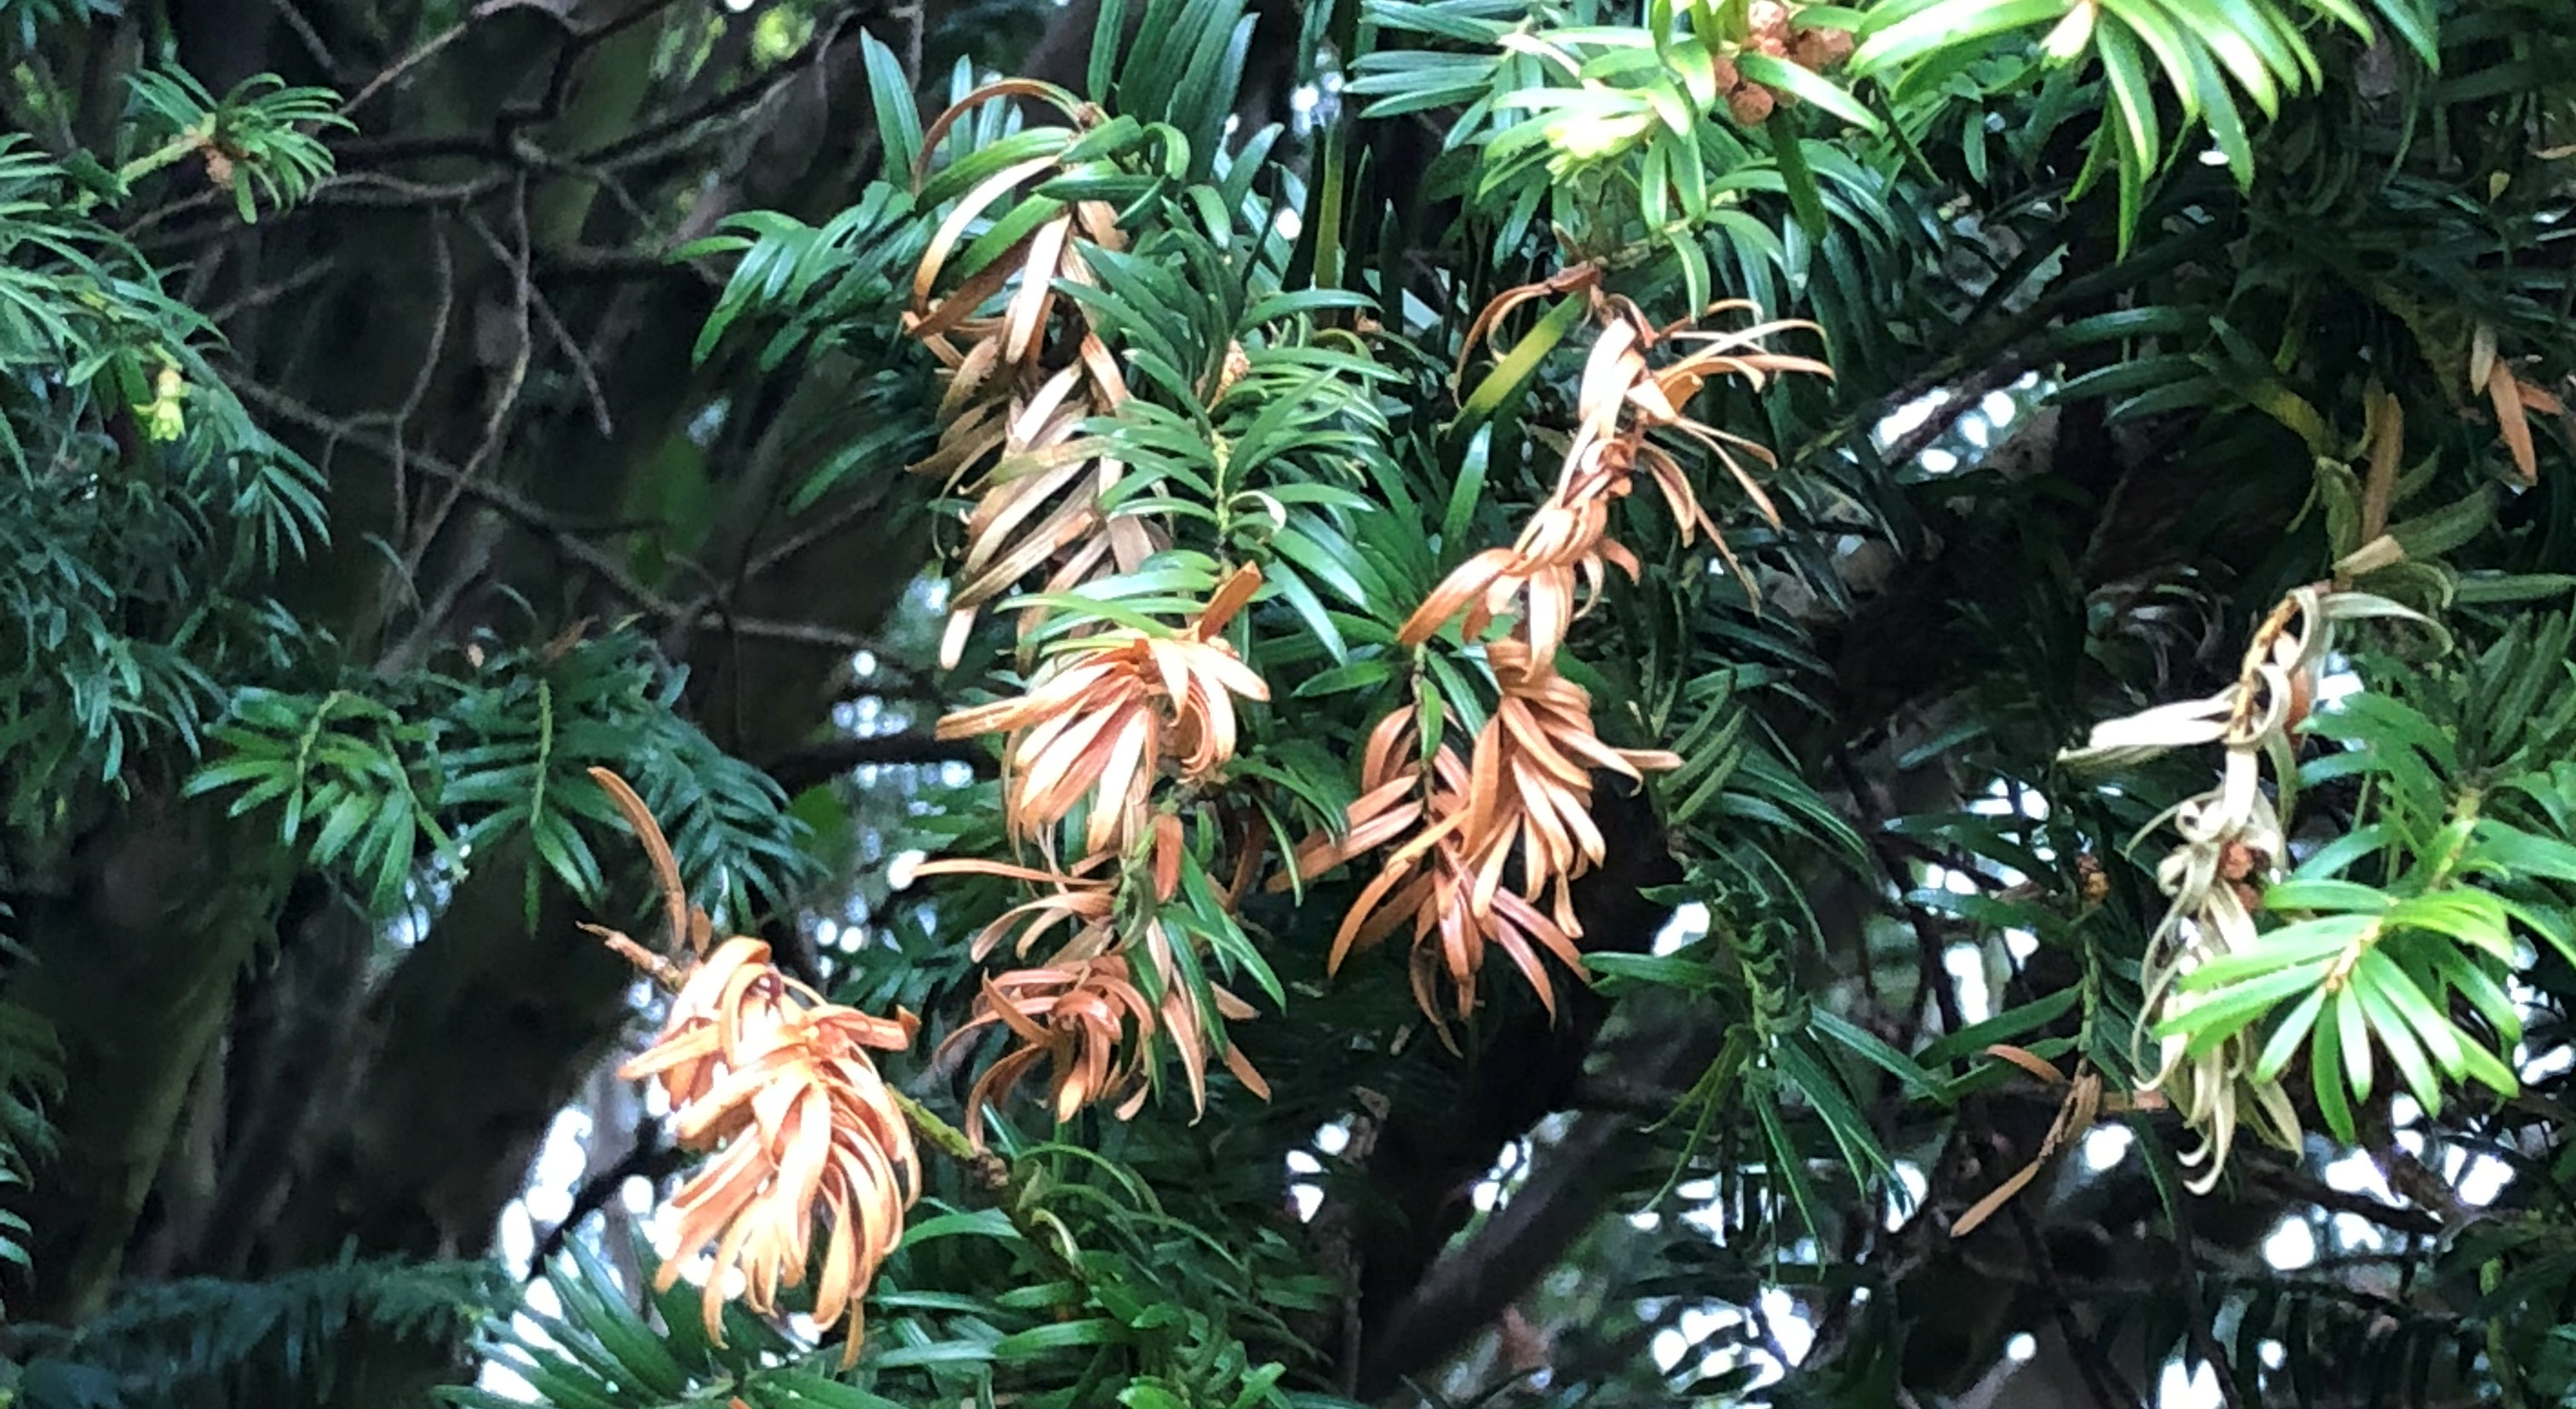 Close-up-of-Yew-needles-showing-damage